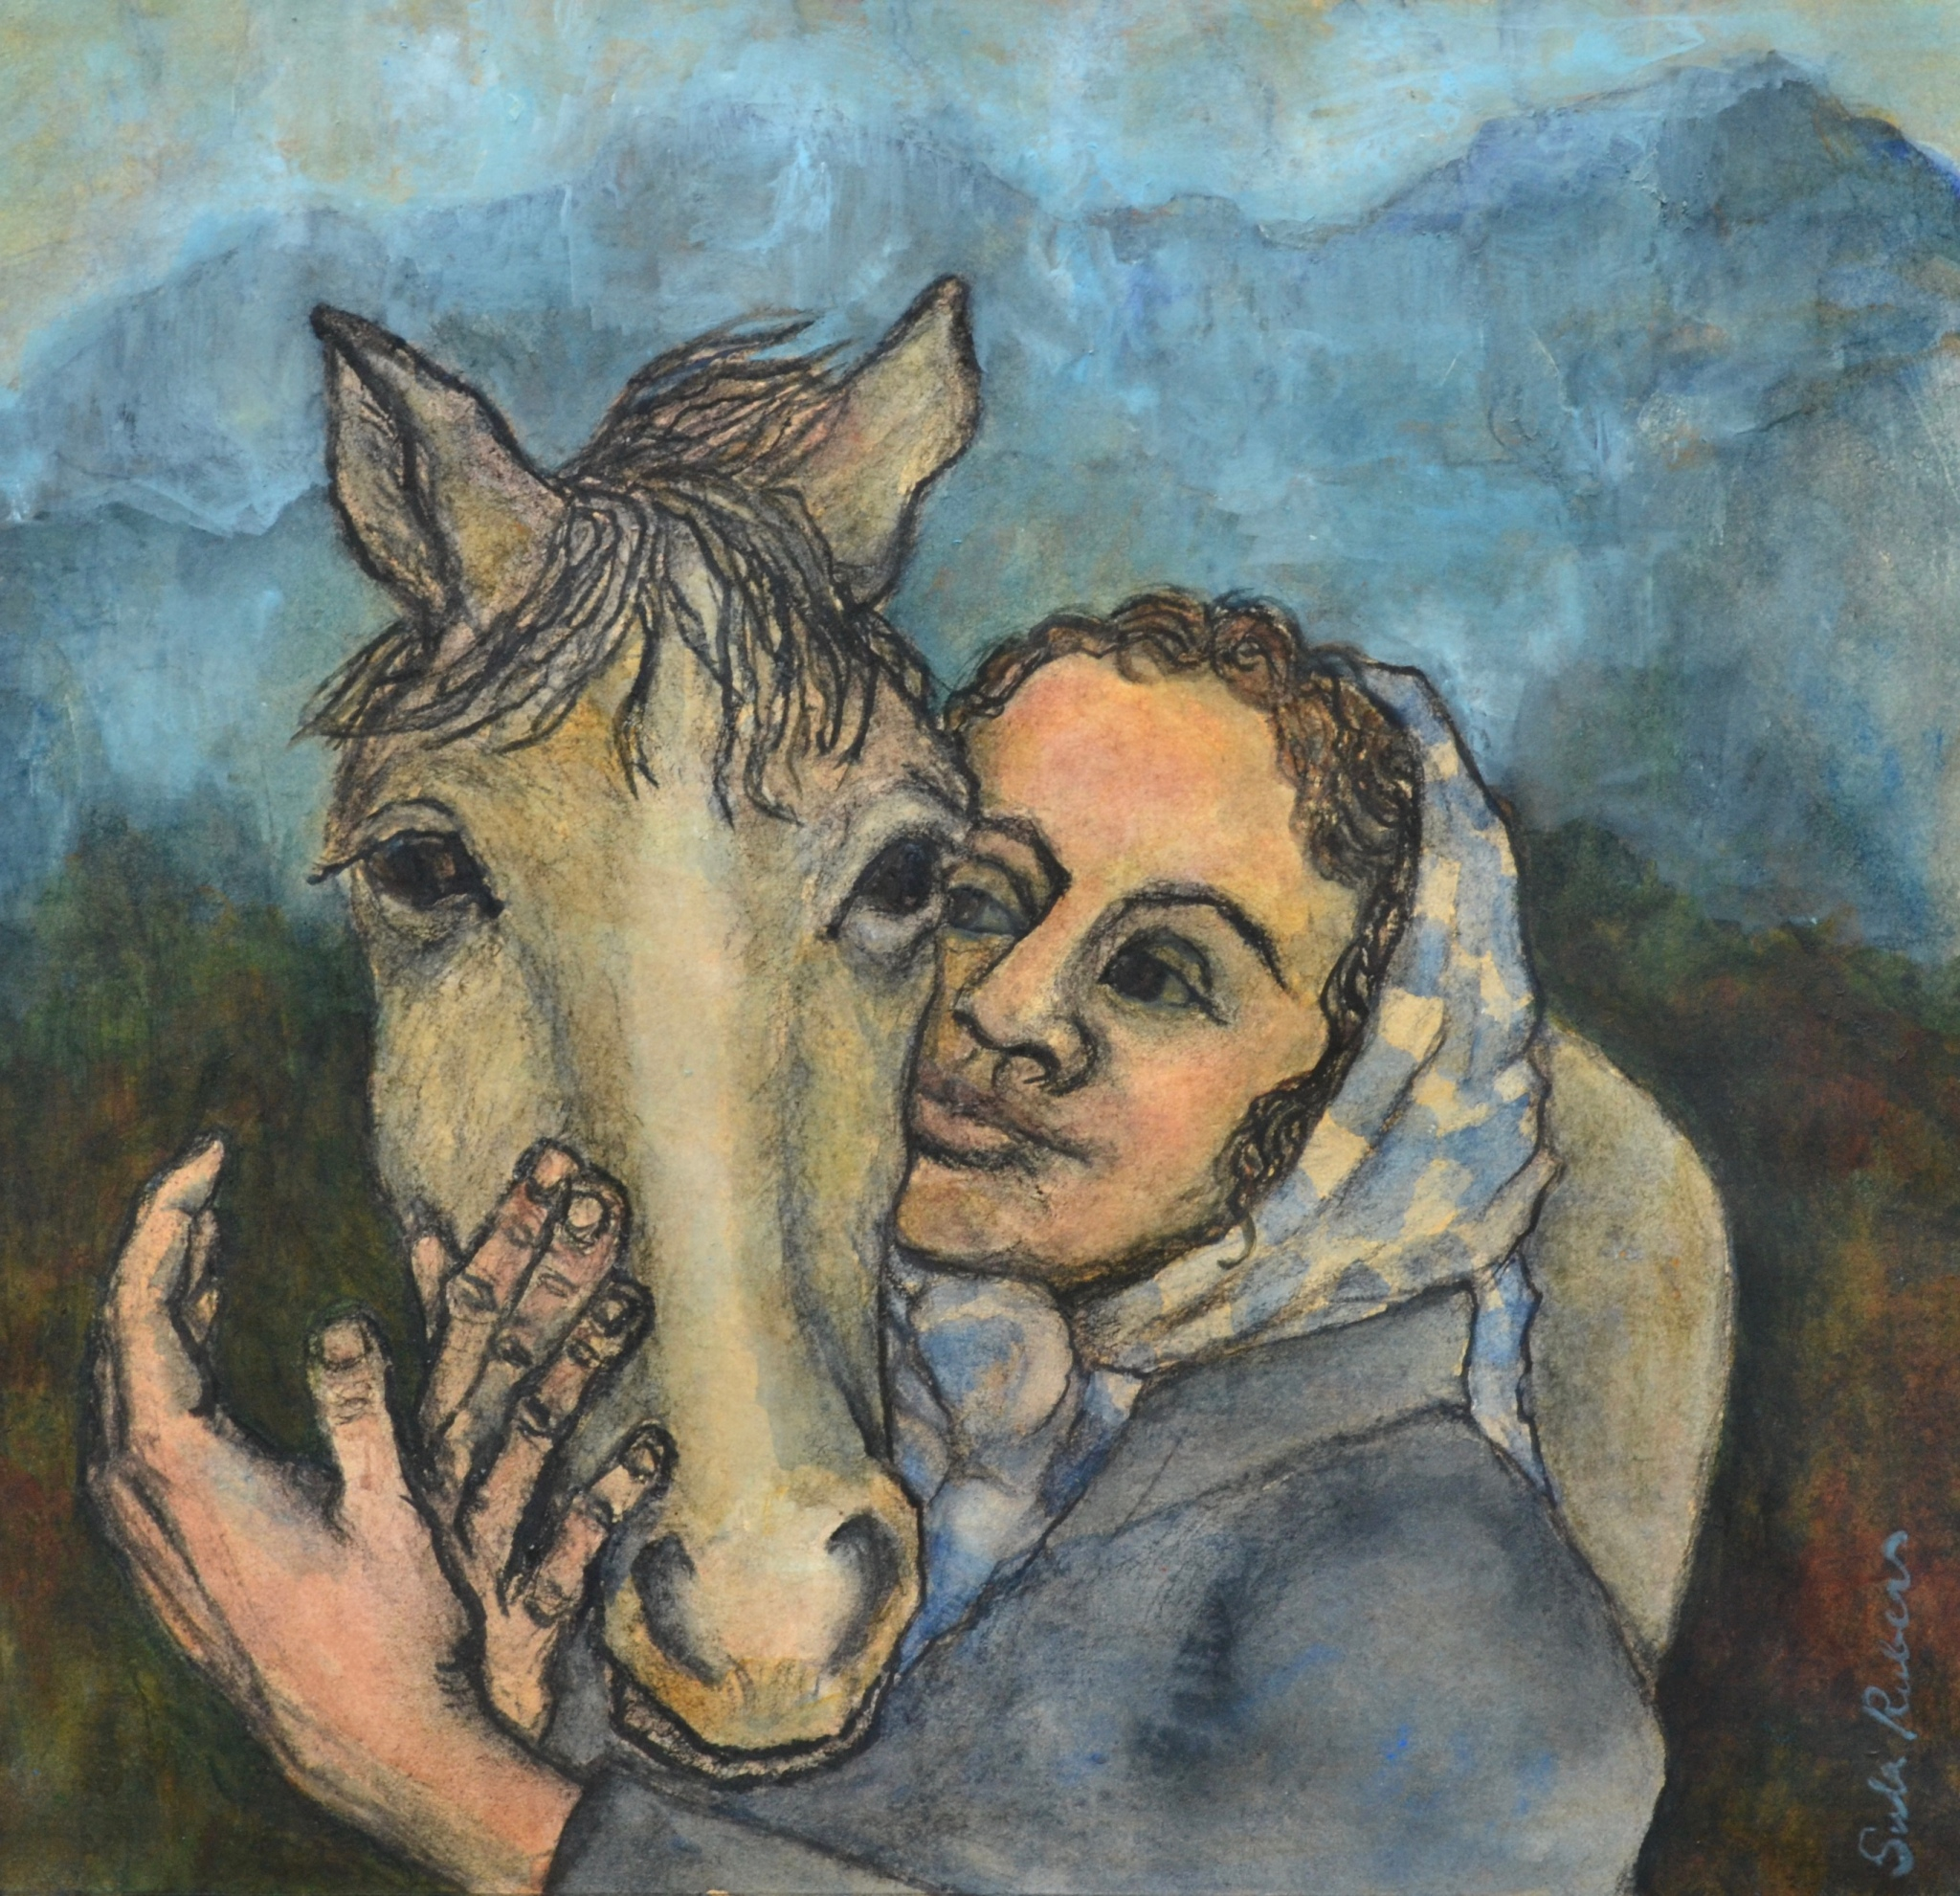 Mountain Girl with Horse